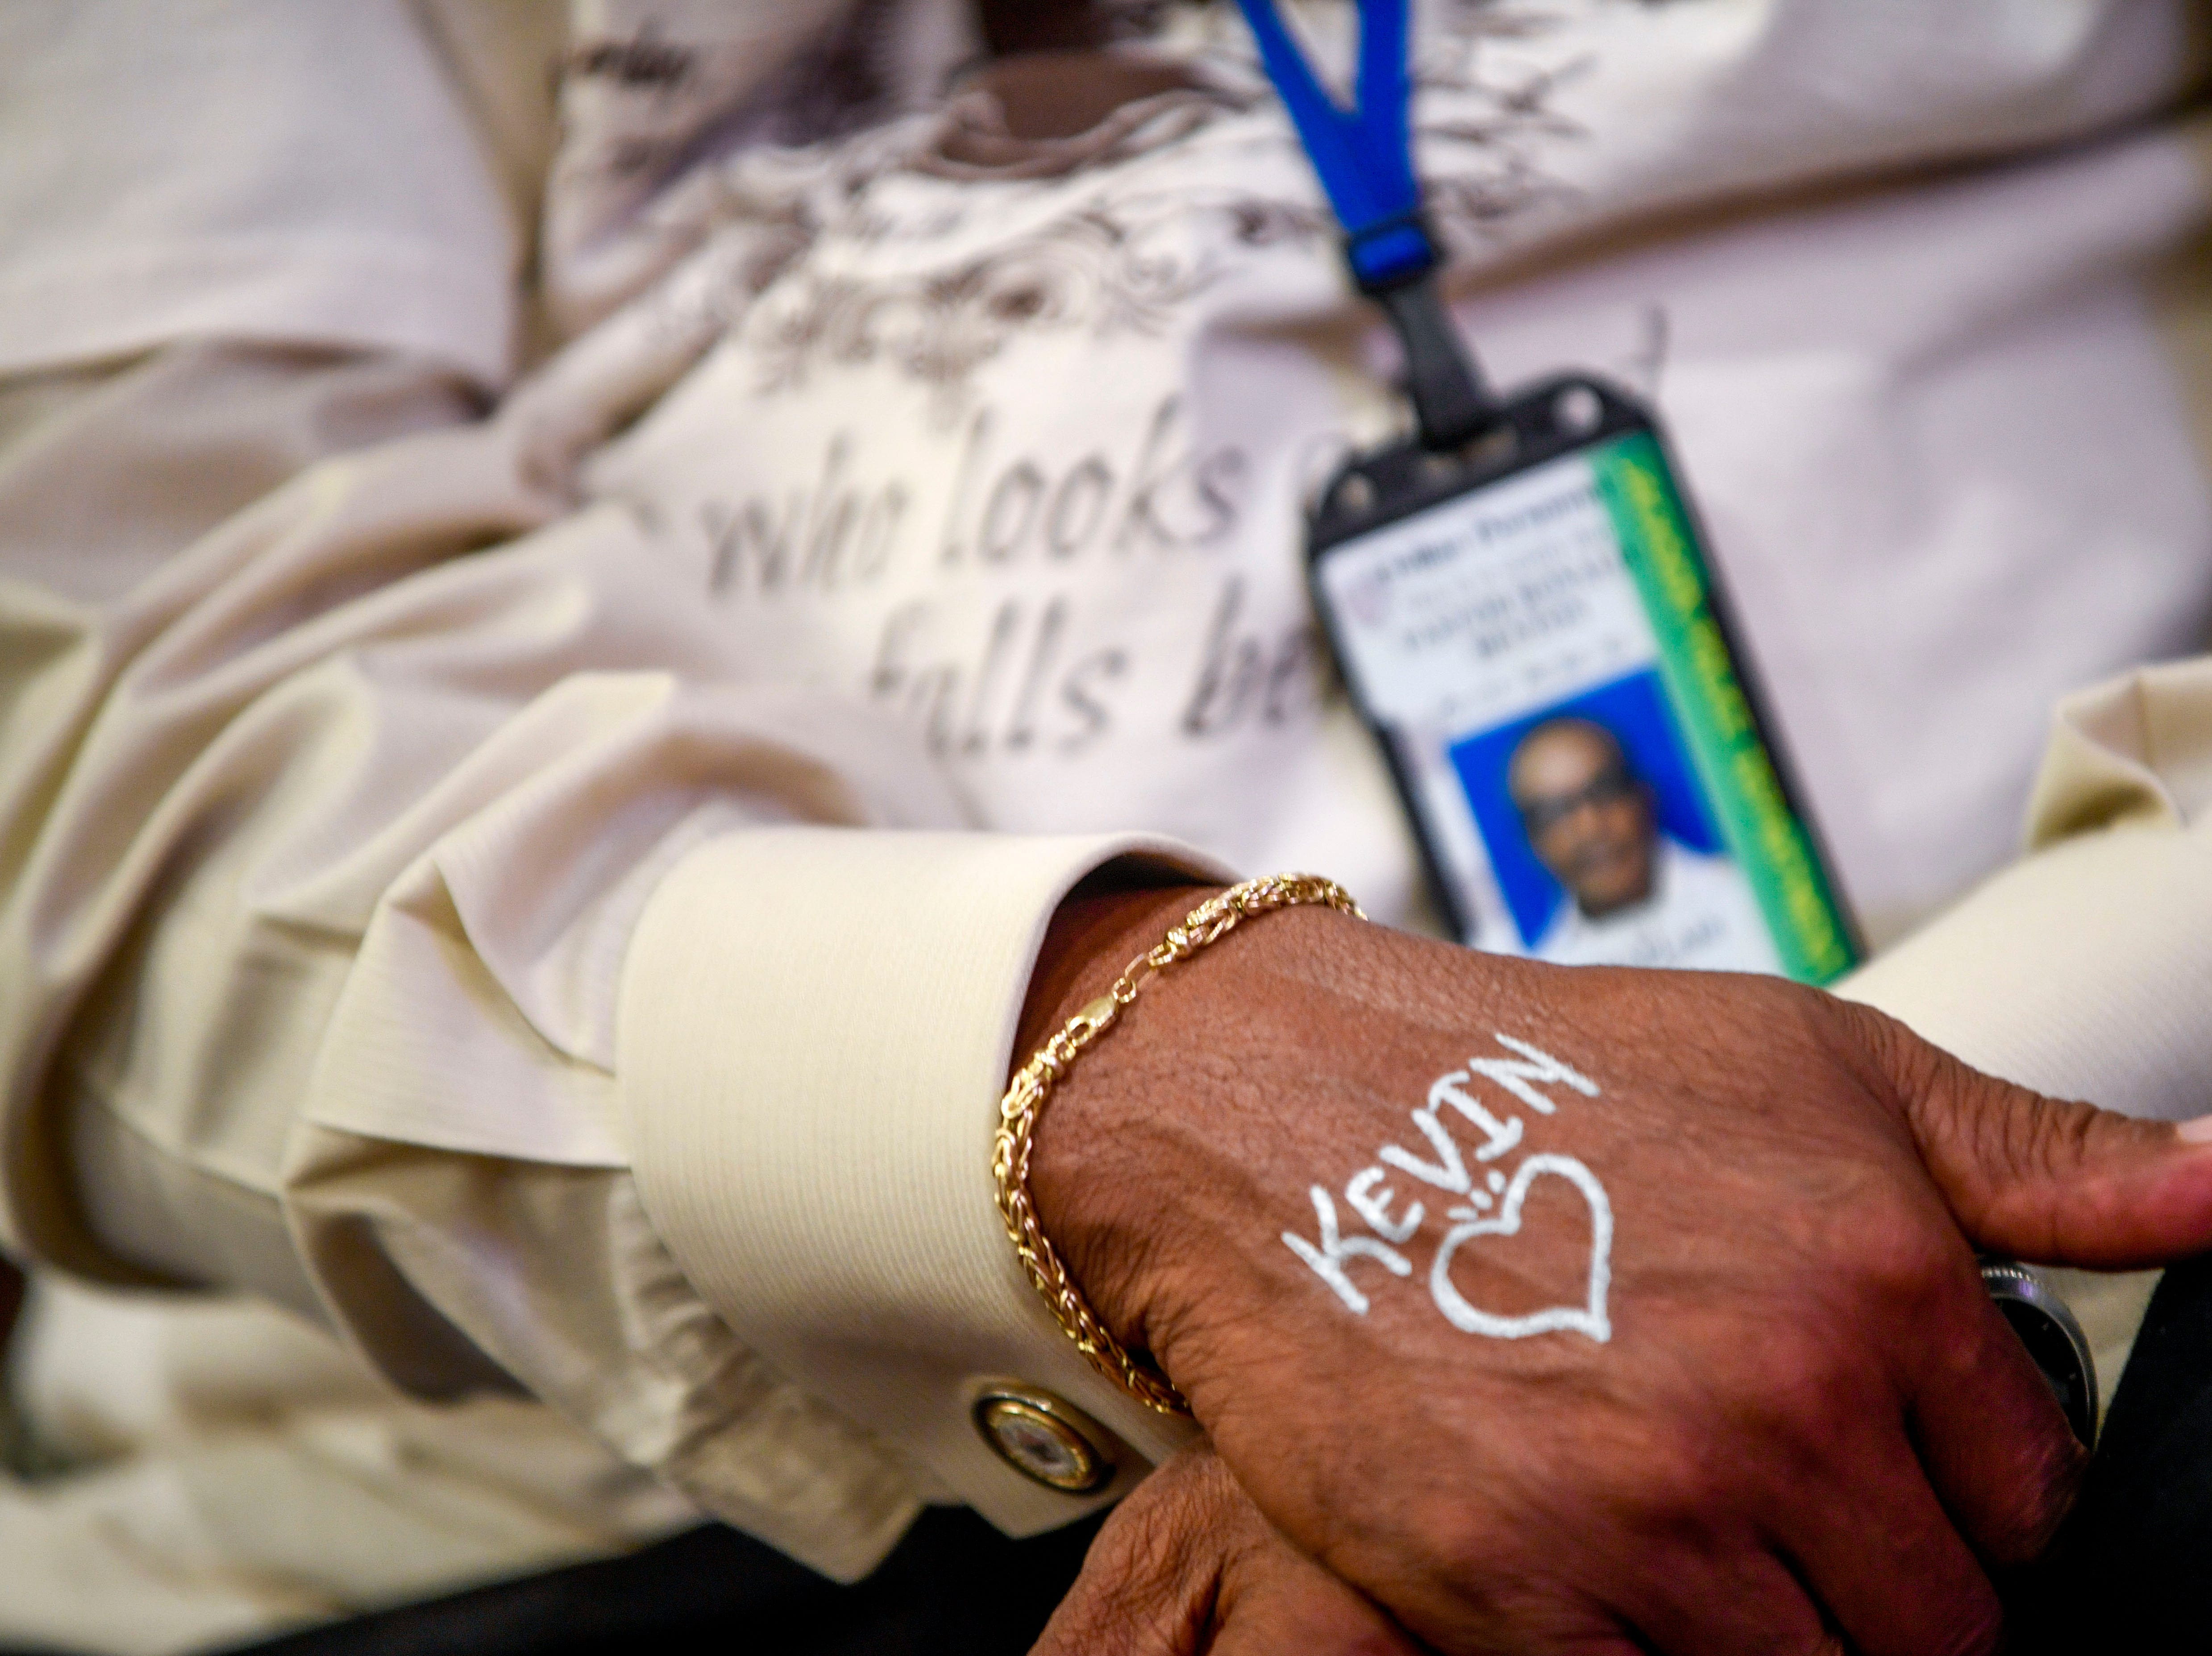 Attendees were offered the opportunity for their loved ones names and a design to be written on their hand during the annual Remember Me Walk hosted at Union University in Jackson, Tenn., on Monday, Oct. 1, 2018.